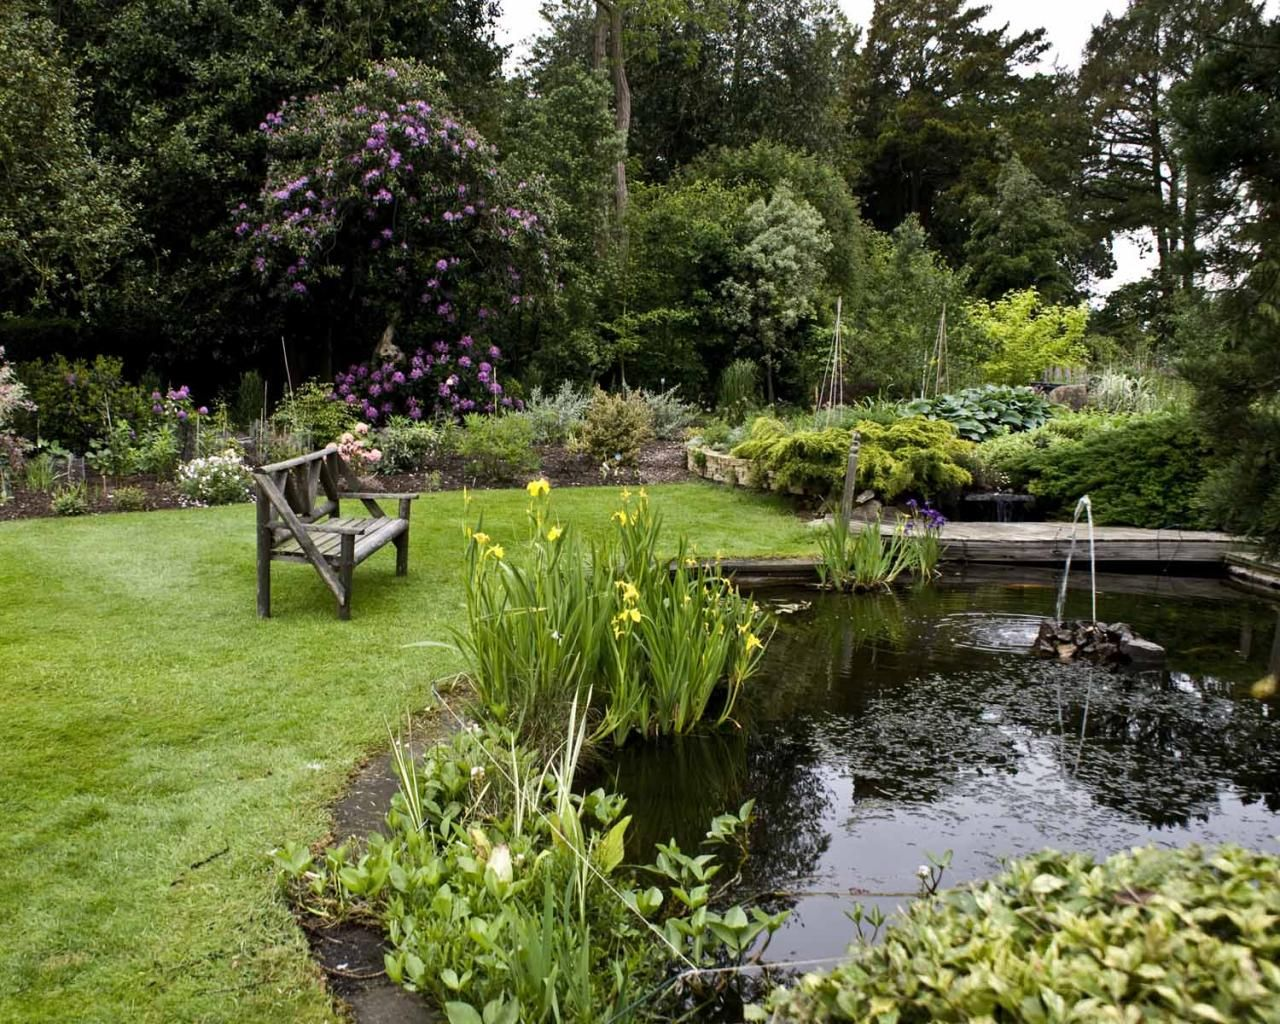 Love the sound of water in a garden! http://thewayofbeauty.org/files/2010/05/english_garden_skellingthorpe-3113806_large.jpg